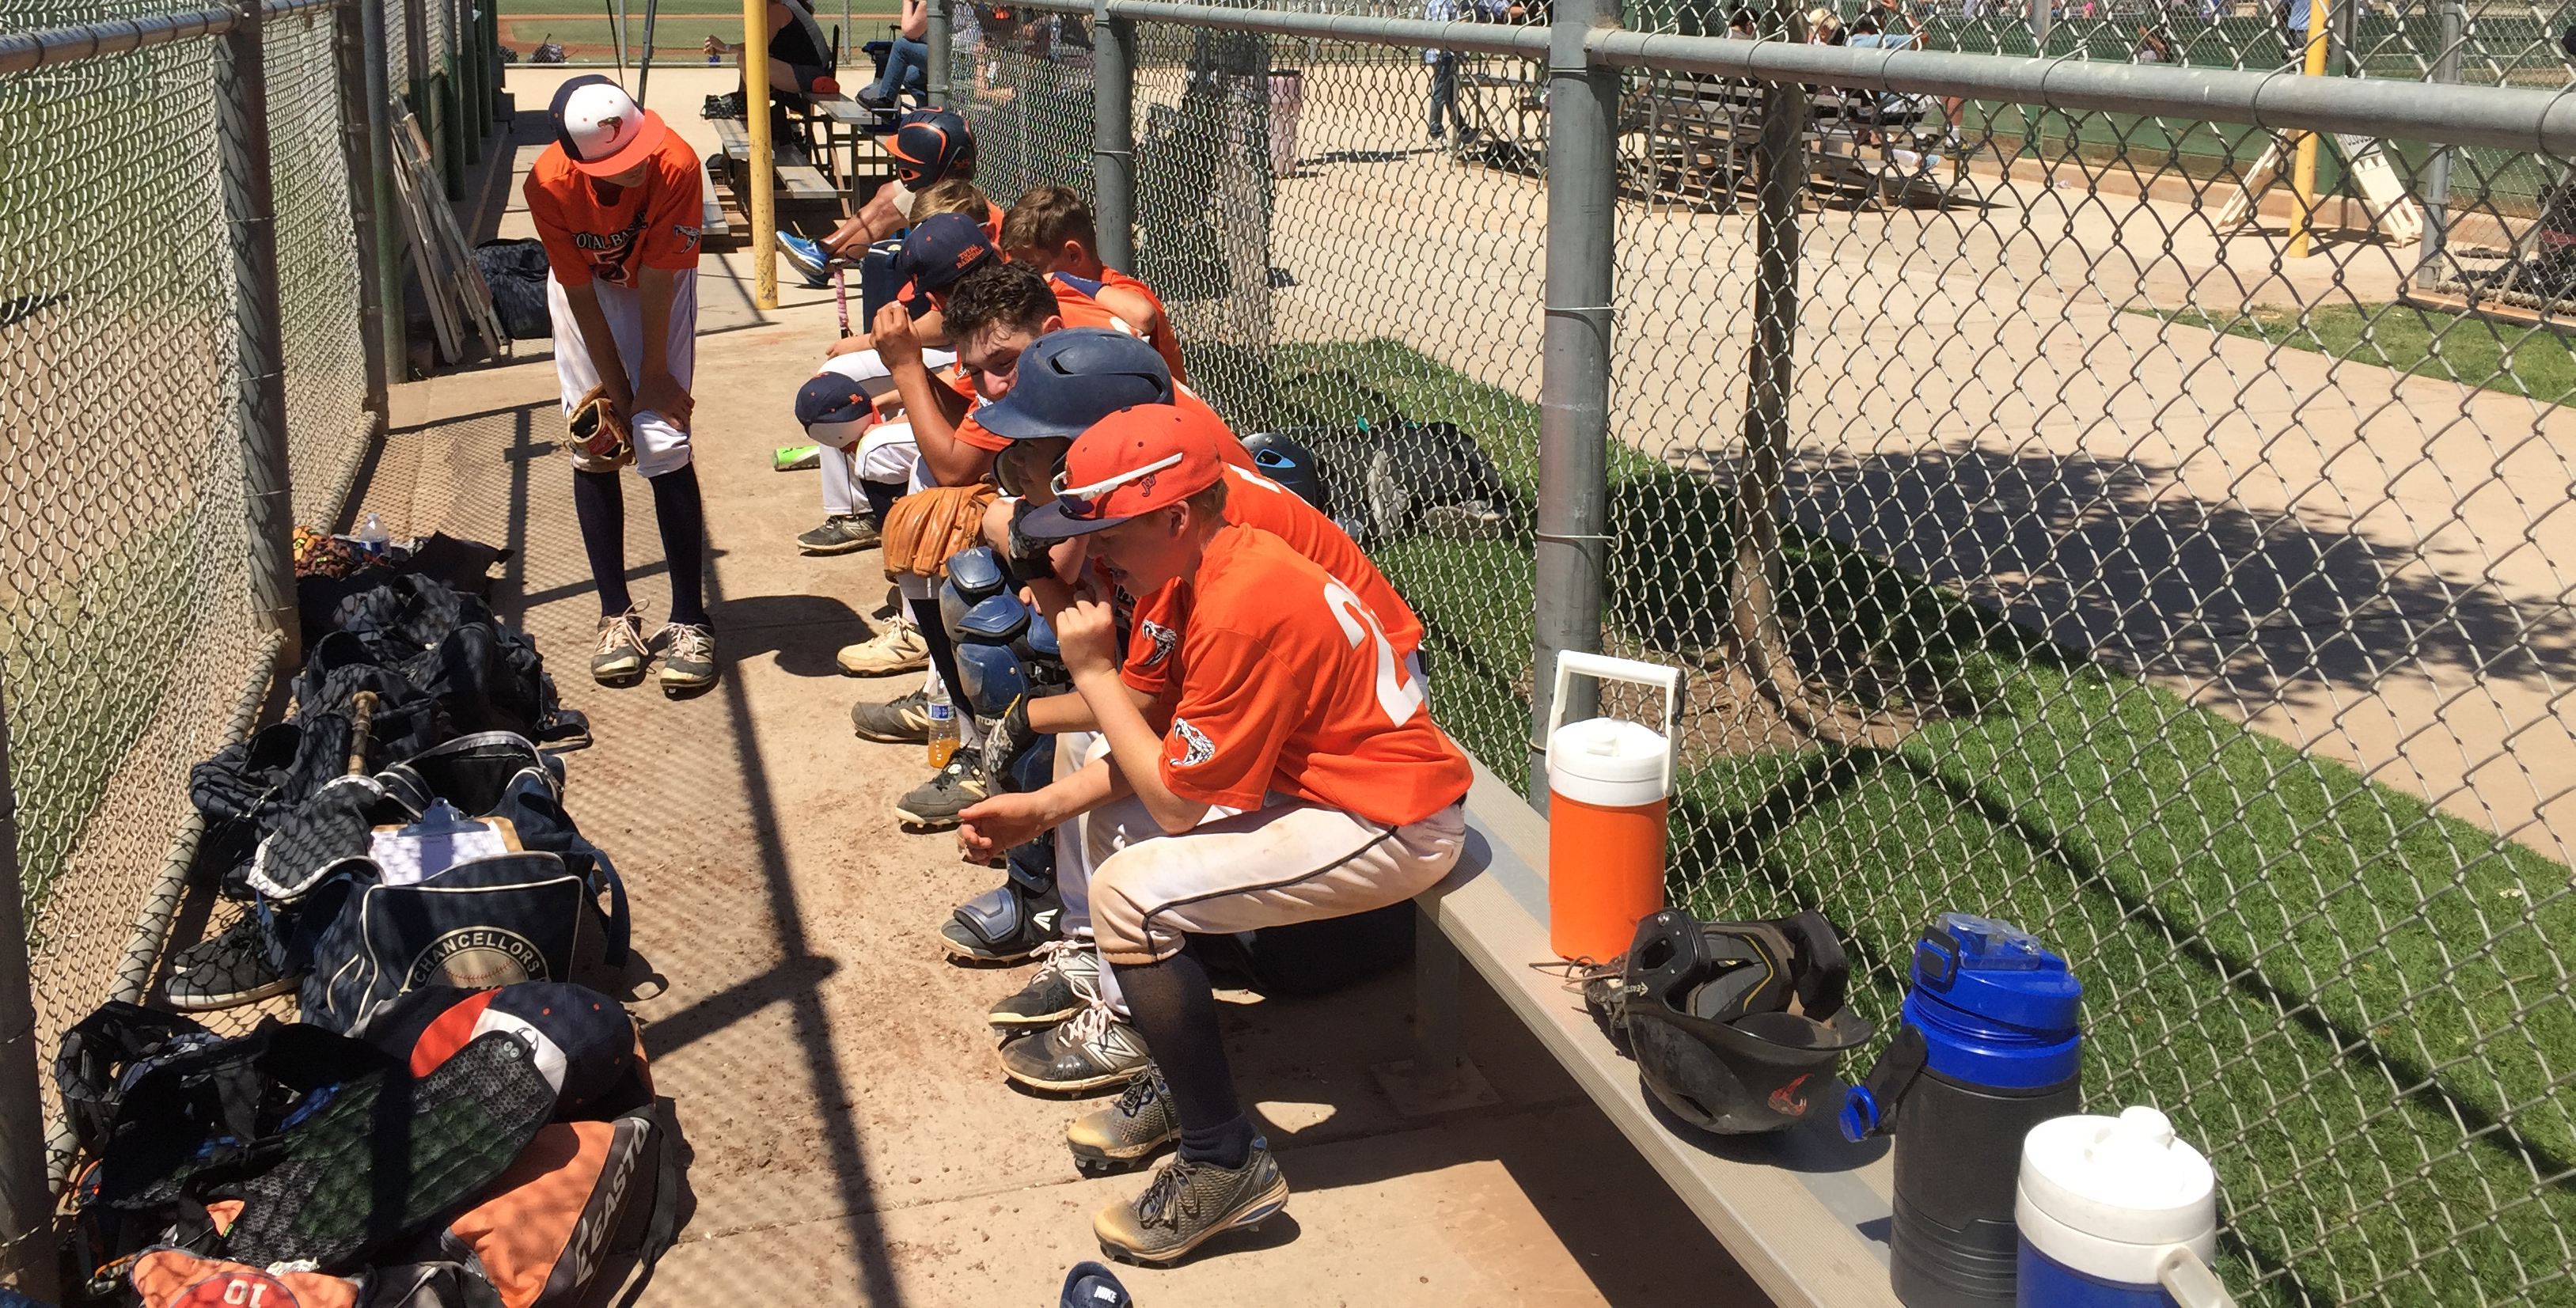 disorganized dugout cropped